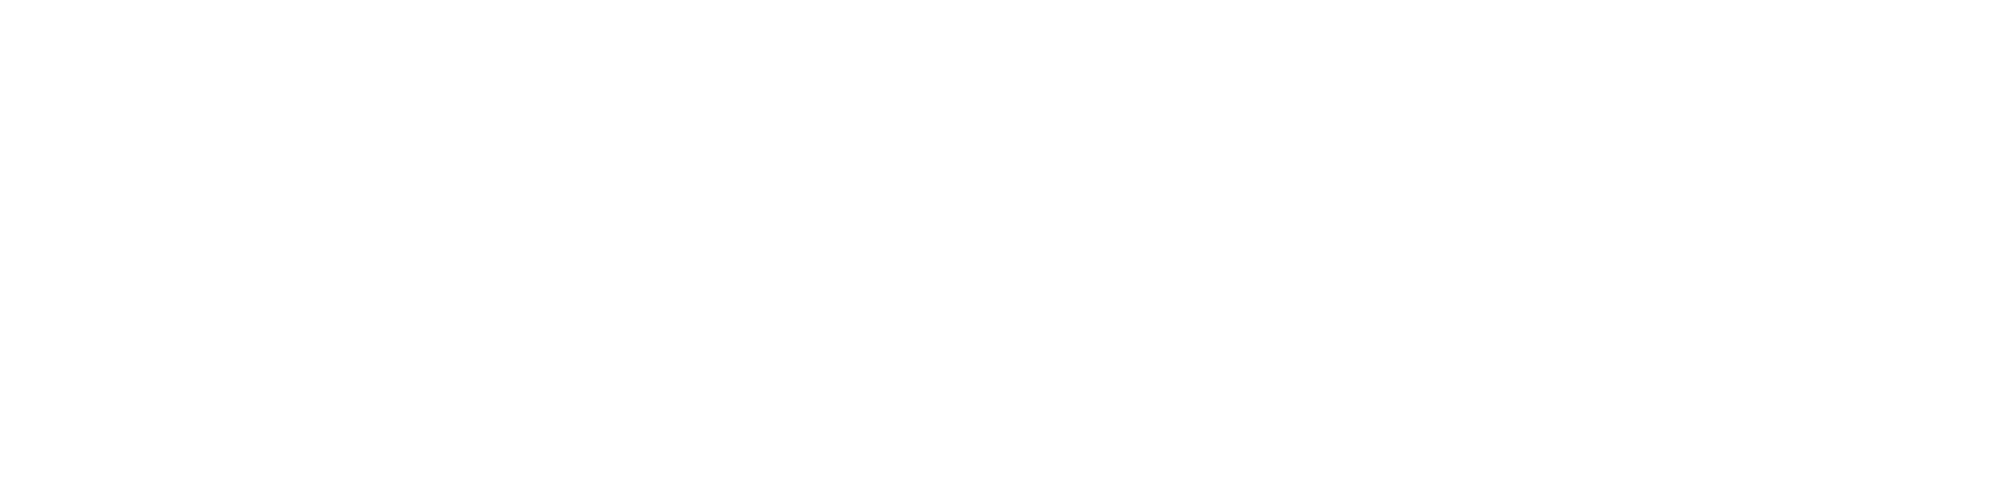 polo shirt order process infographic